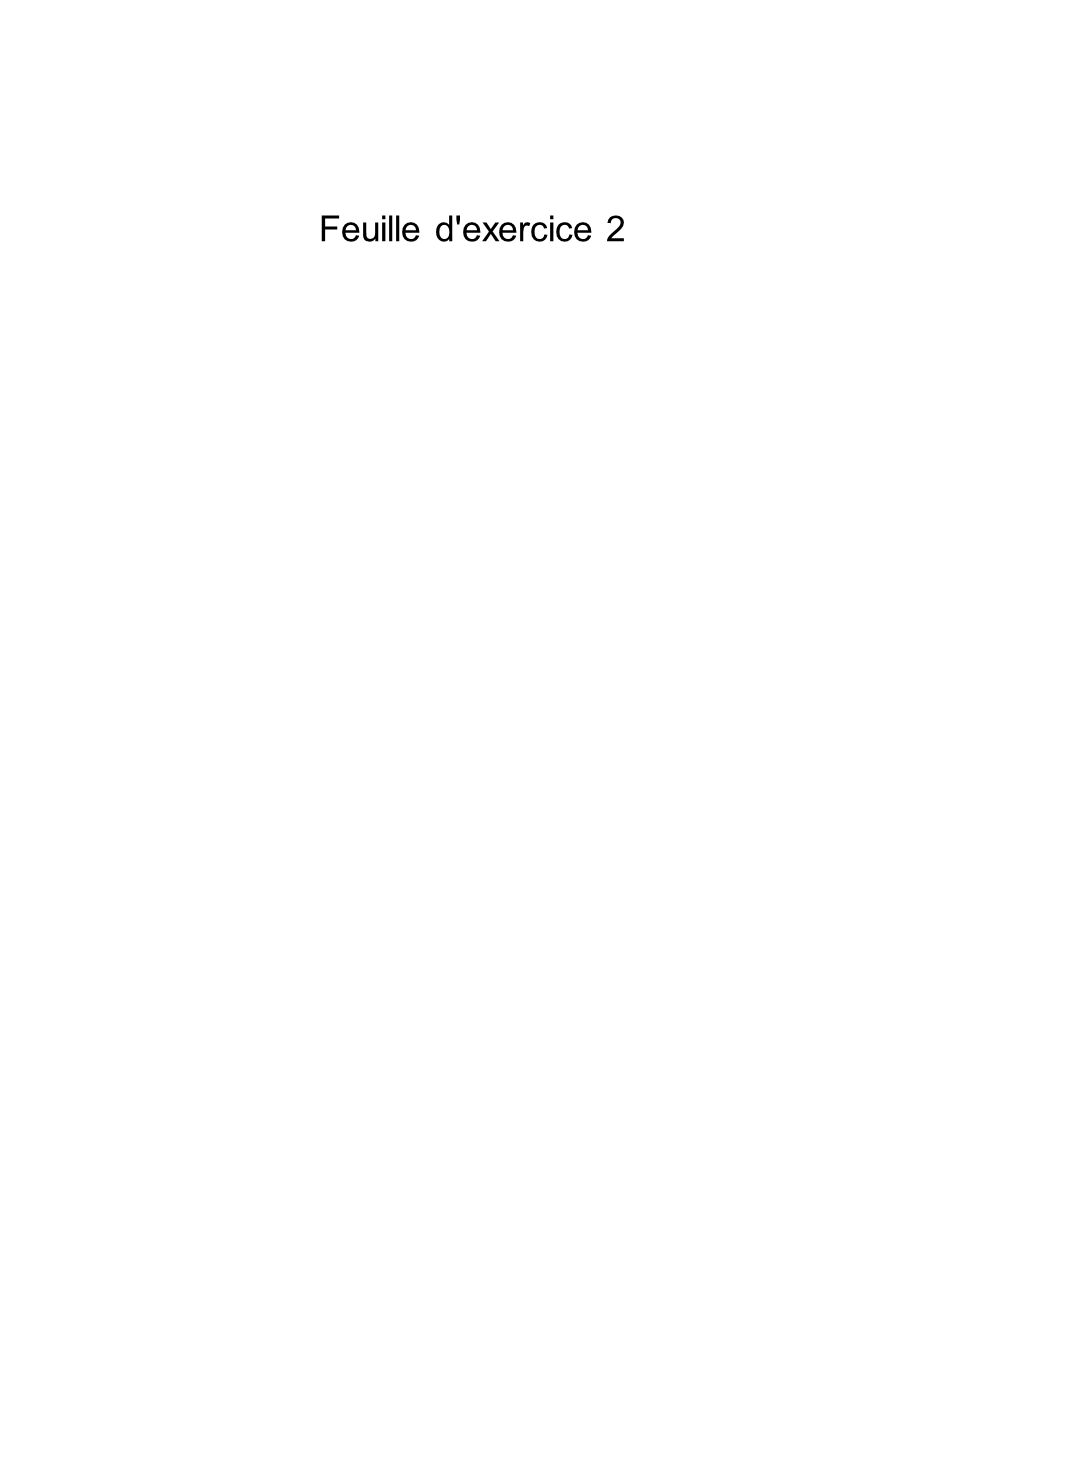 Feuille d'exercice 2